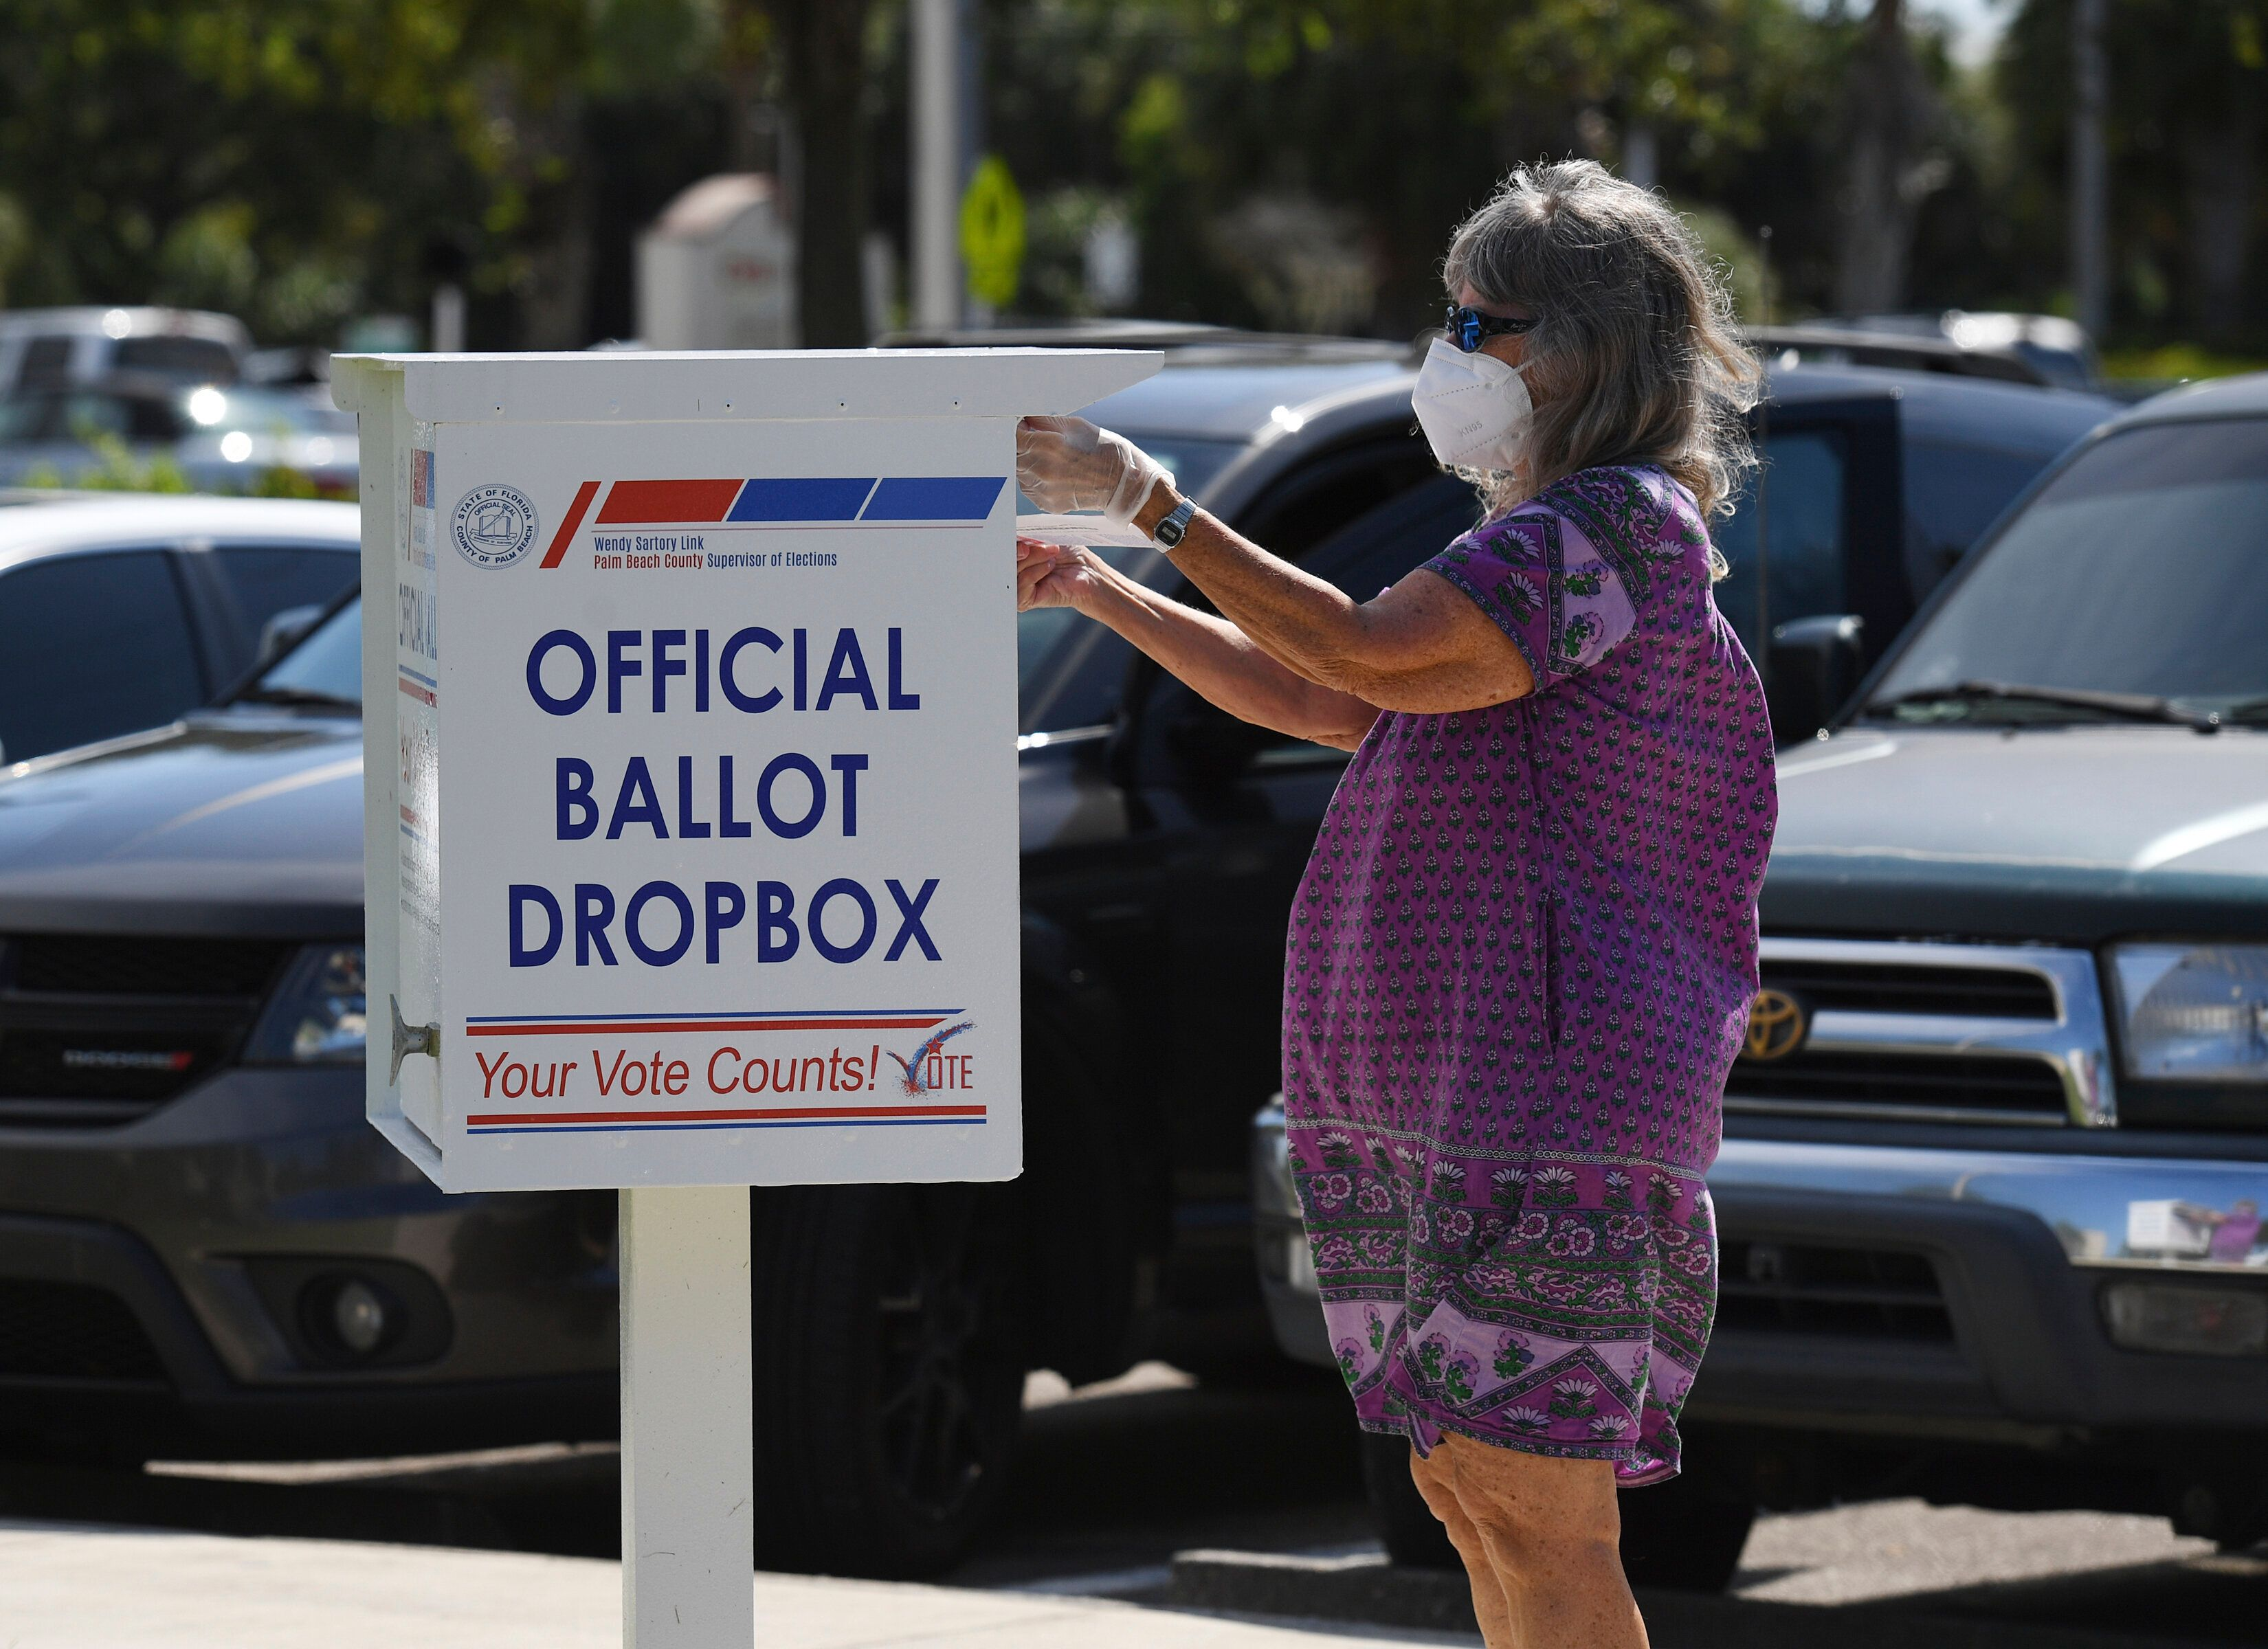 Voters may have limited time to return their mailed ballots if states only count those received on Election Day.